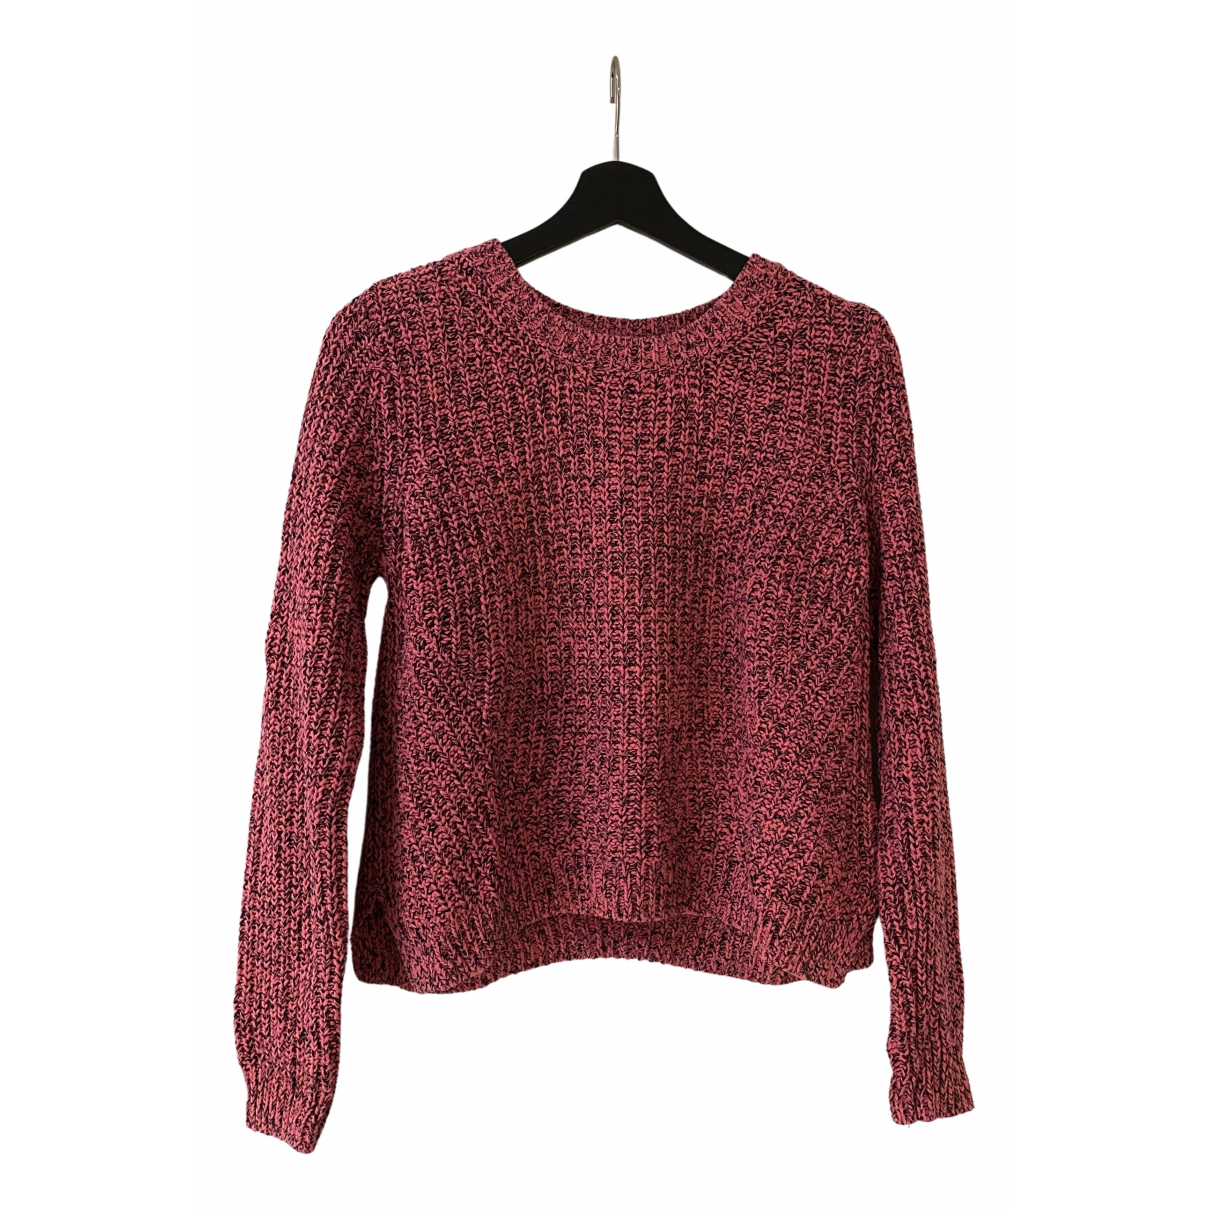 H&m Studio N Pink Cotton Knitwear for Women S International